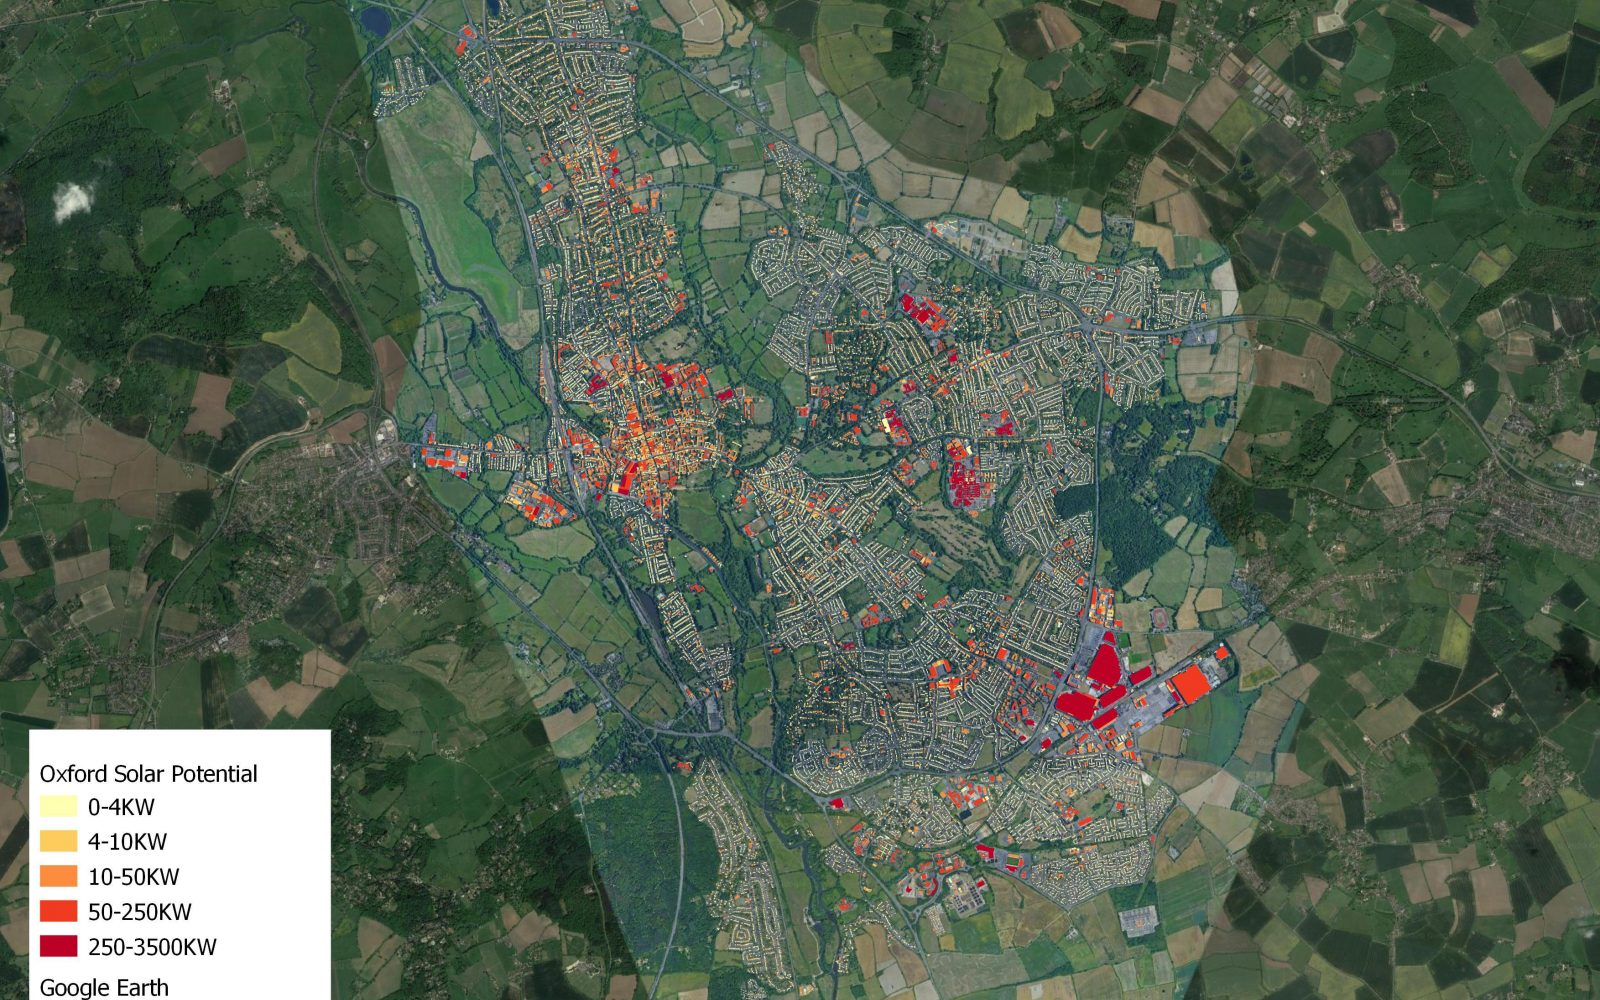 The potential of individual buildings for solar in Oxford. Image: Energeo.